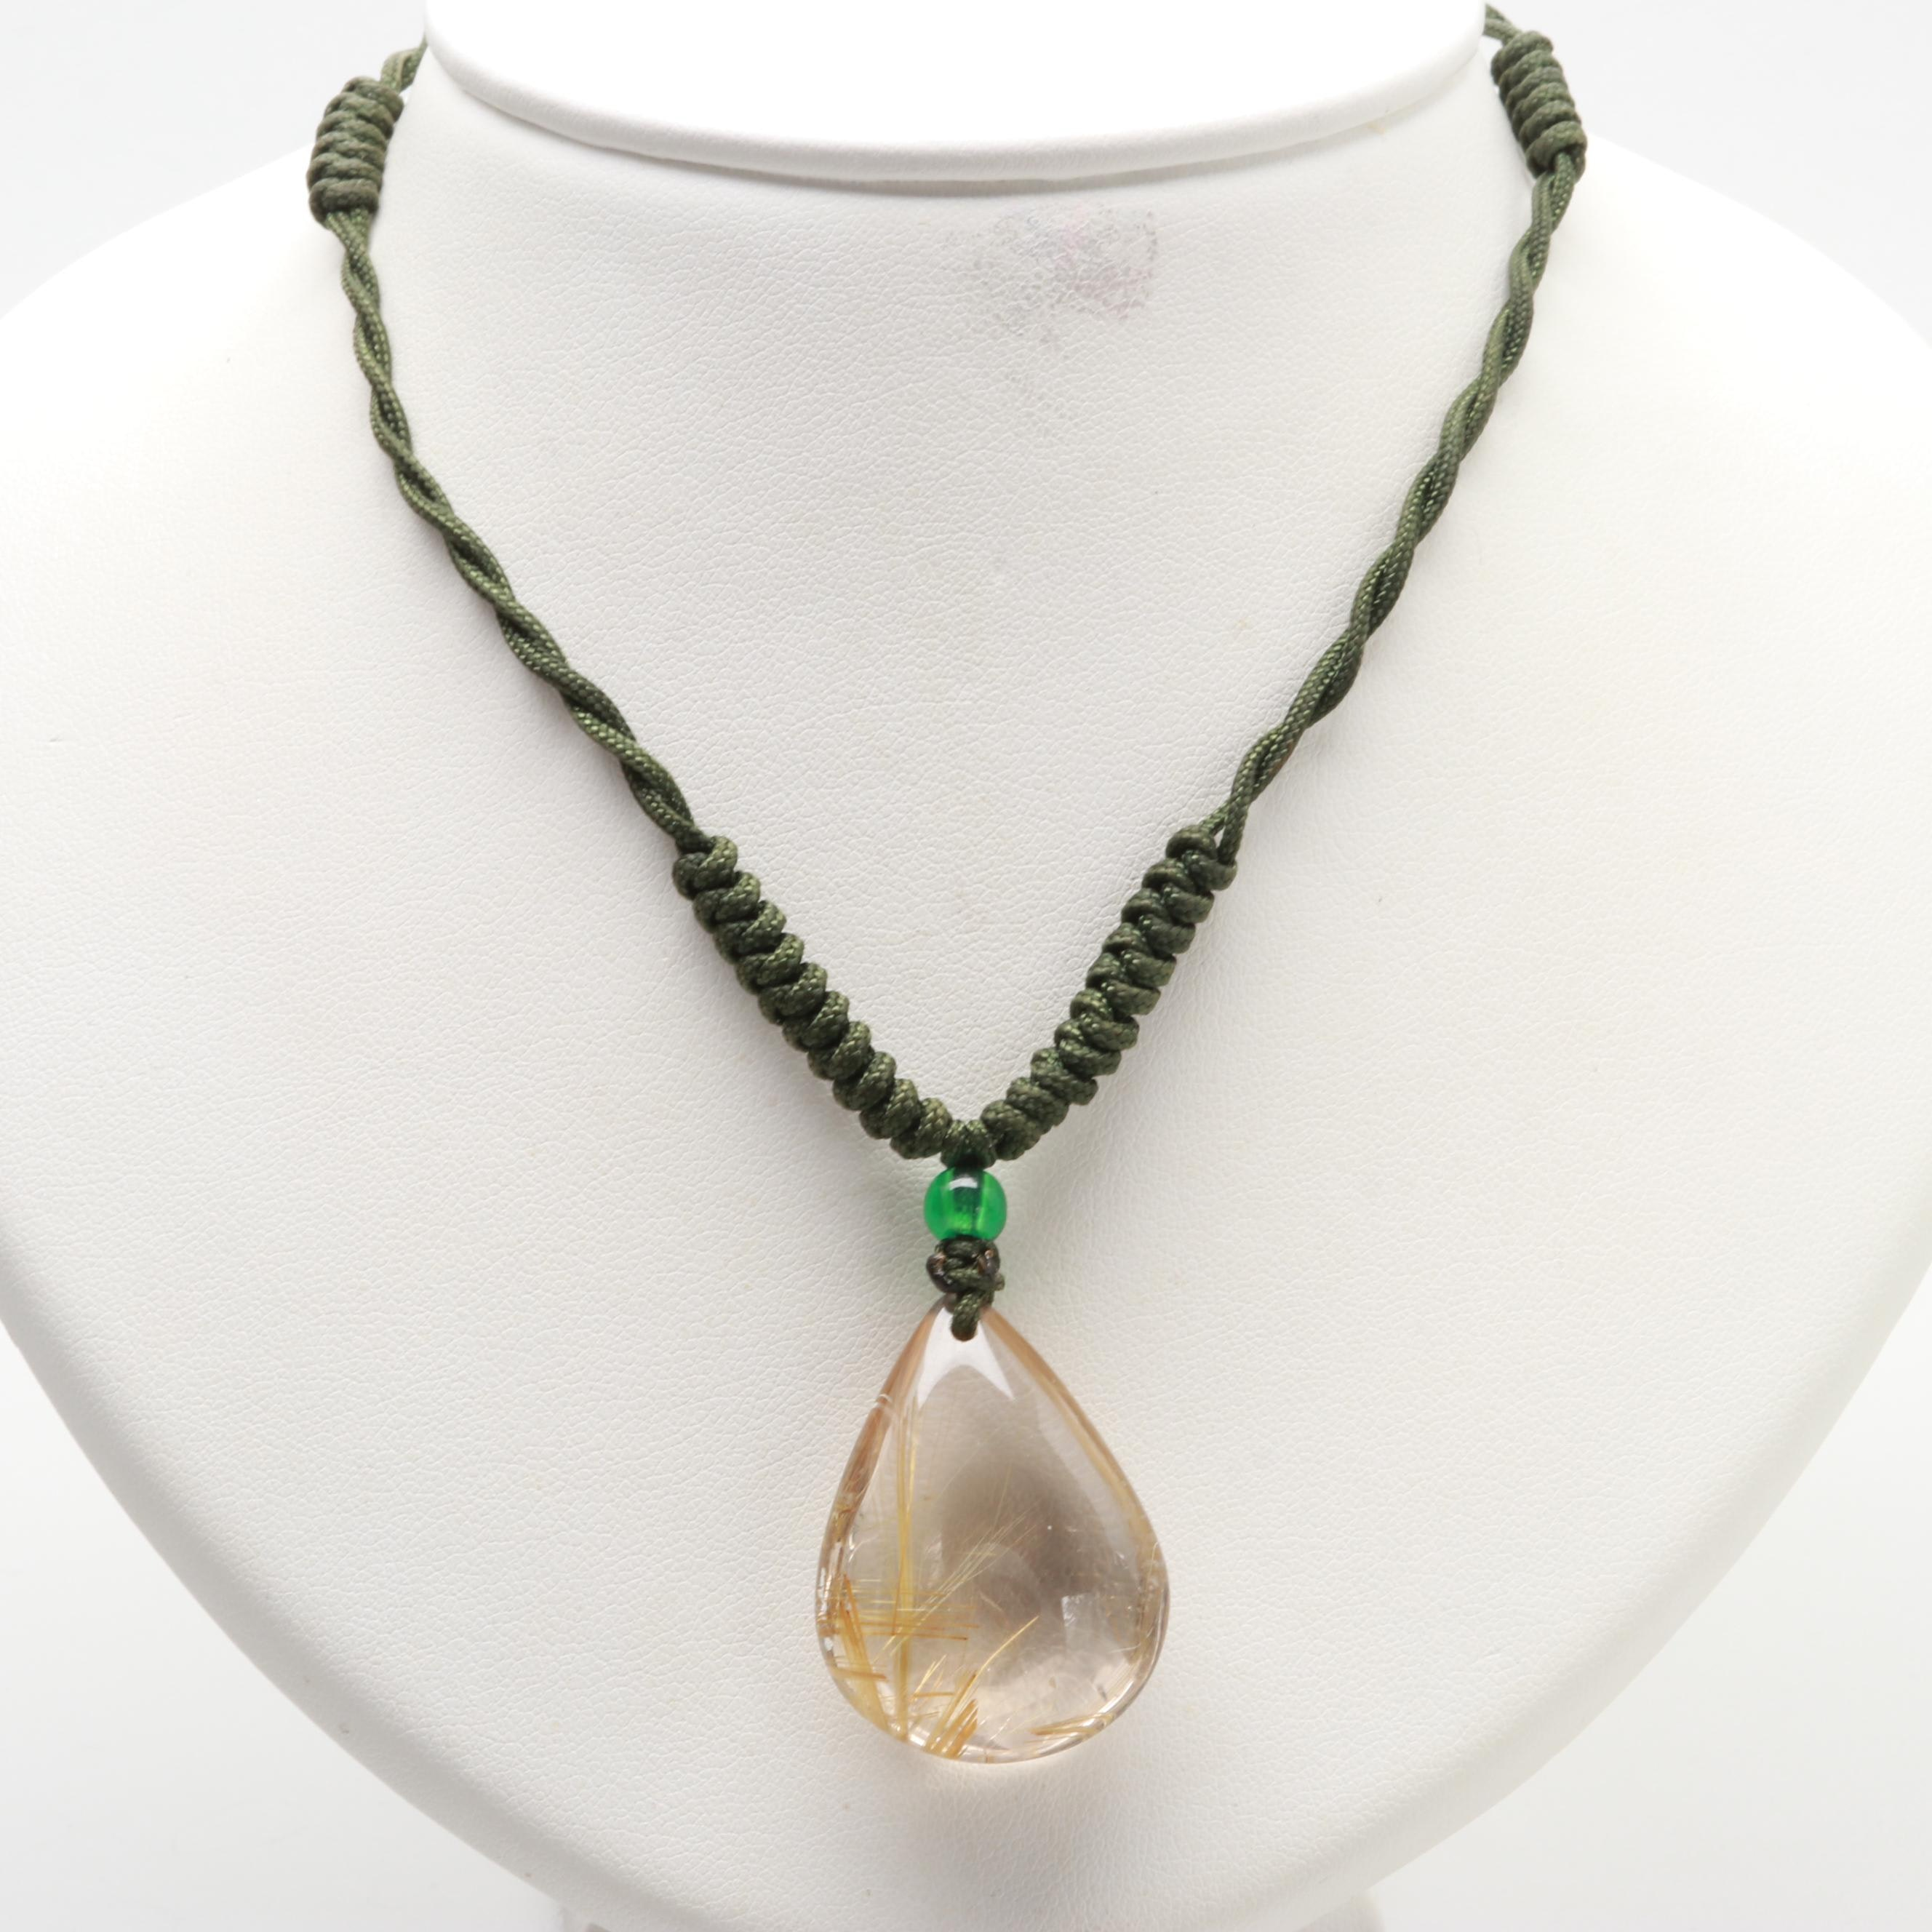 Rutilated Quartz and Glass Bead Pendant on Cord Necklace